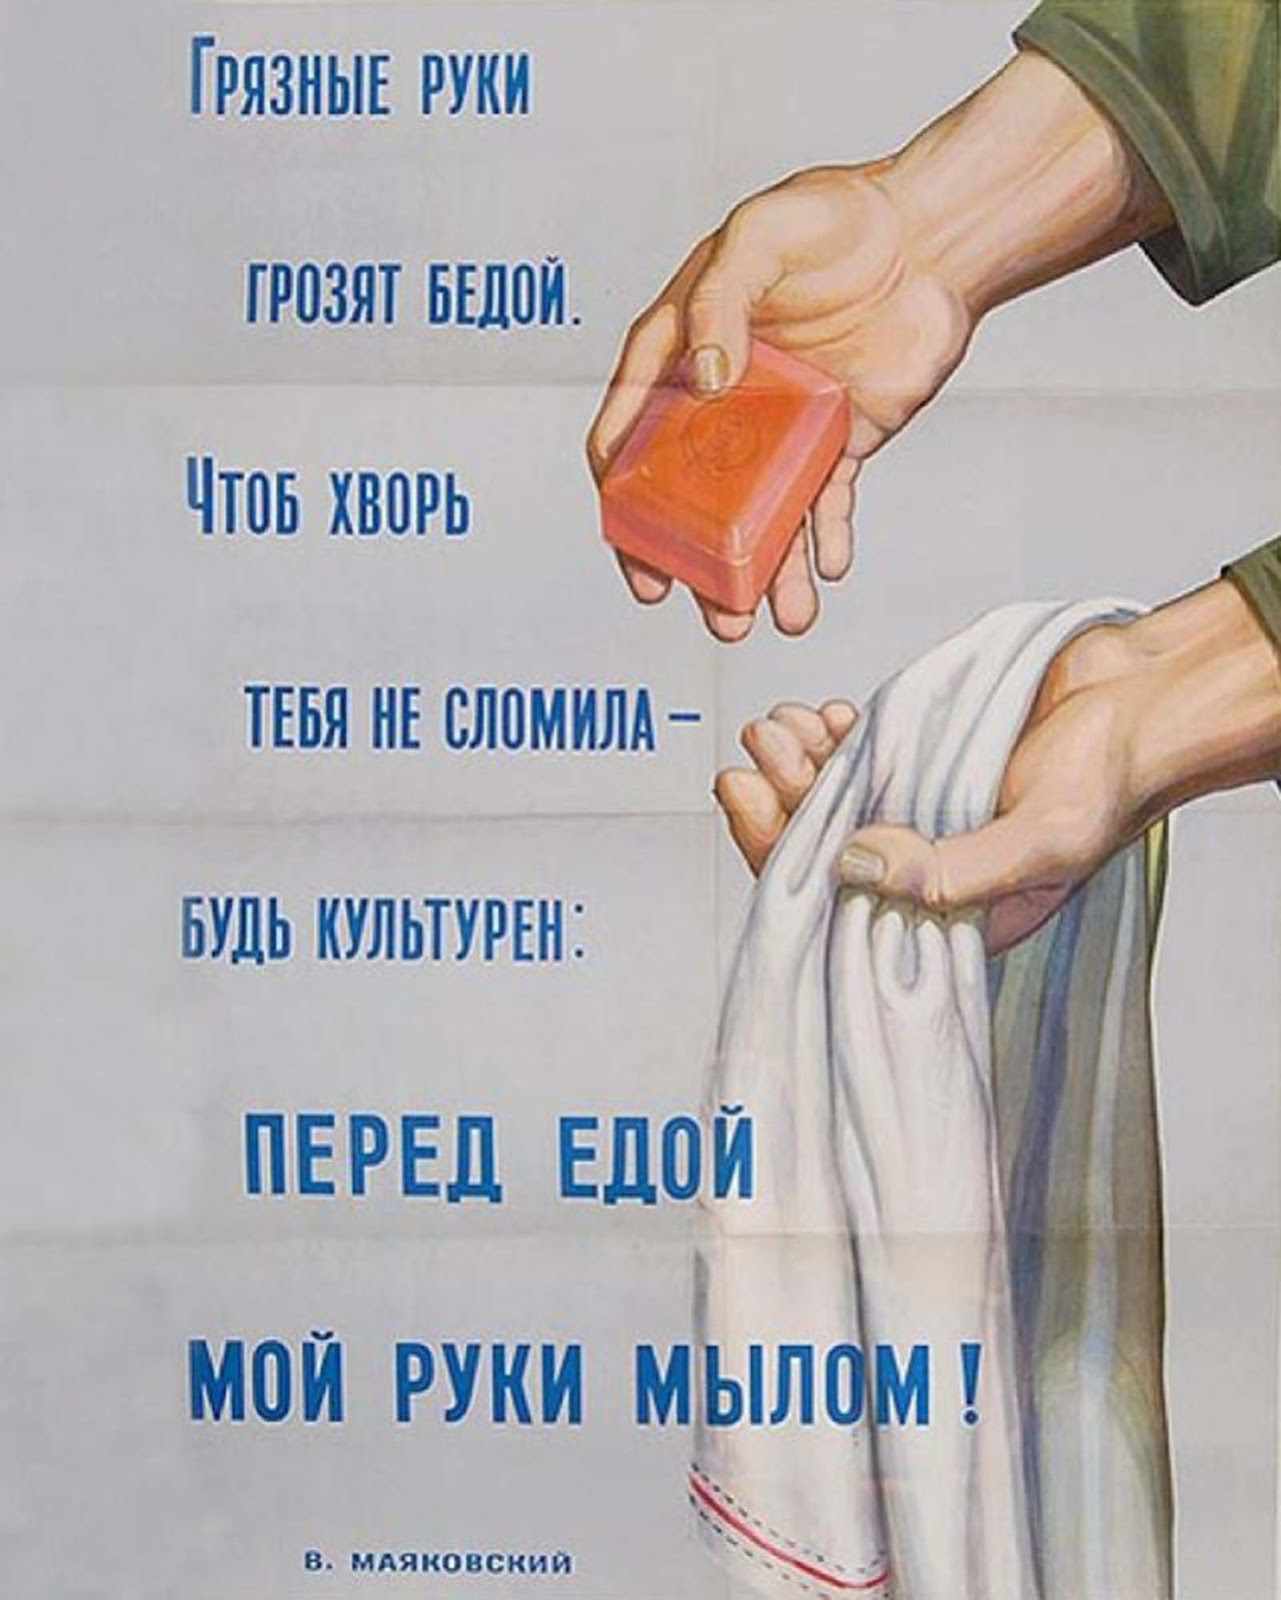 "From Soviet Russia: ""Dirty hands mean trouble. In order to not get sick, be cultured: before eating, wash your hands with soap!"""